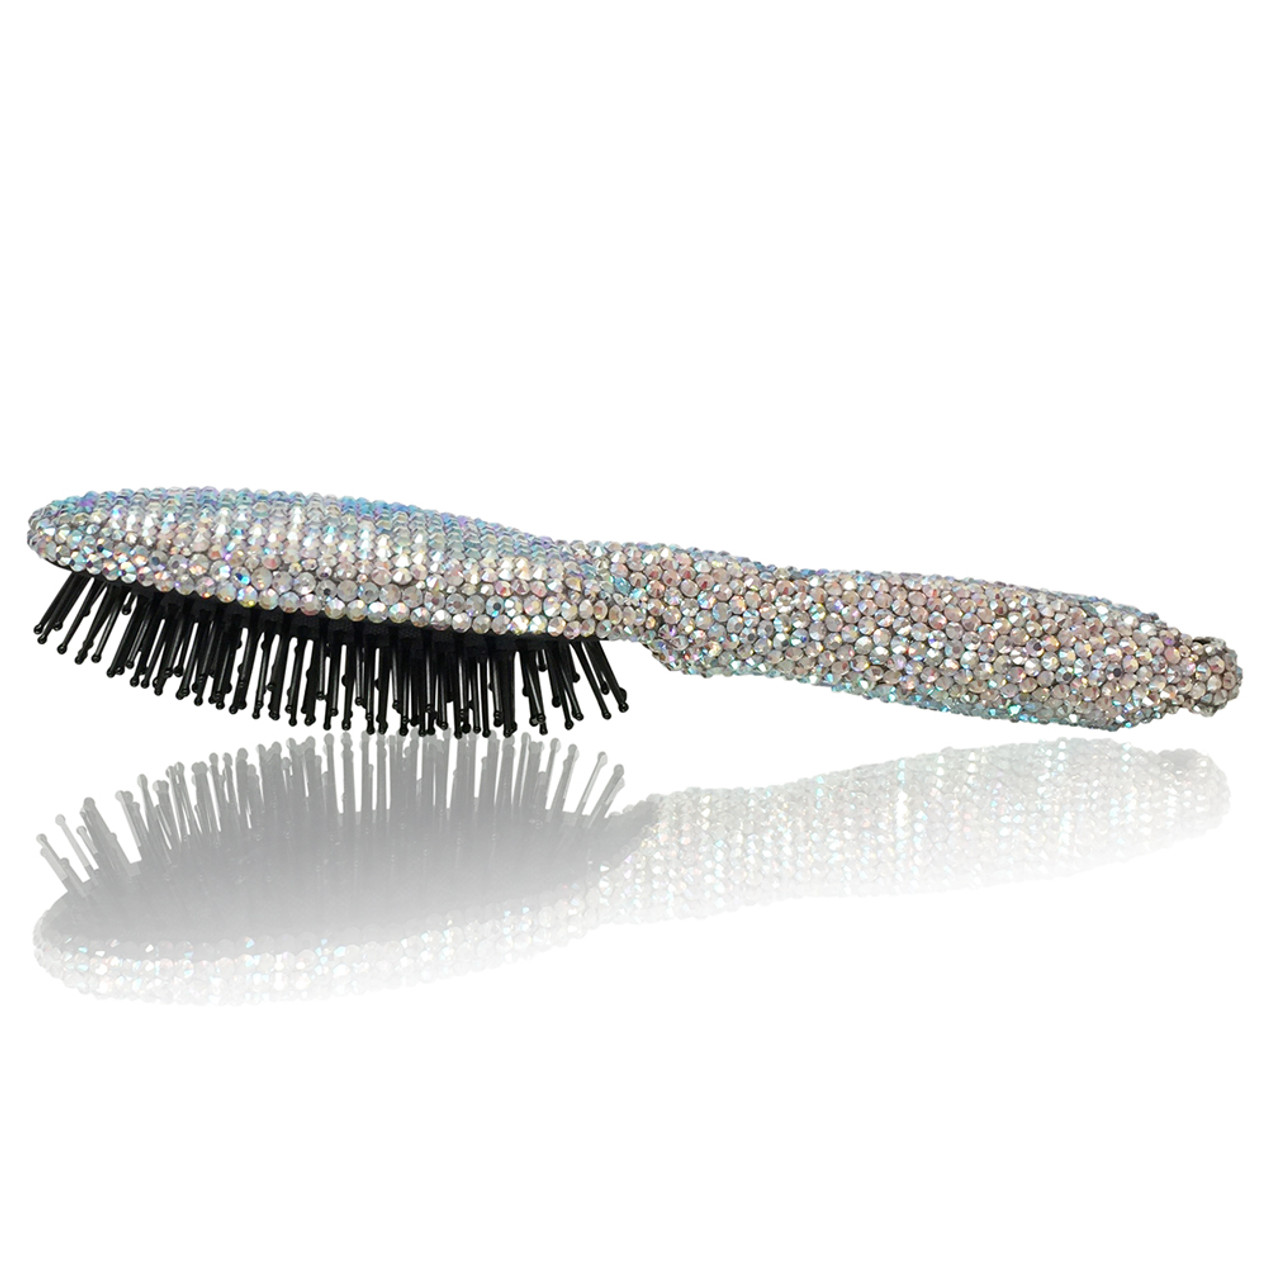 Oval Shape Crystal Brush